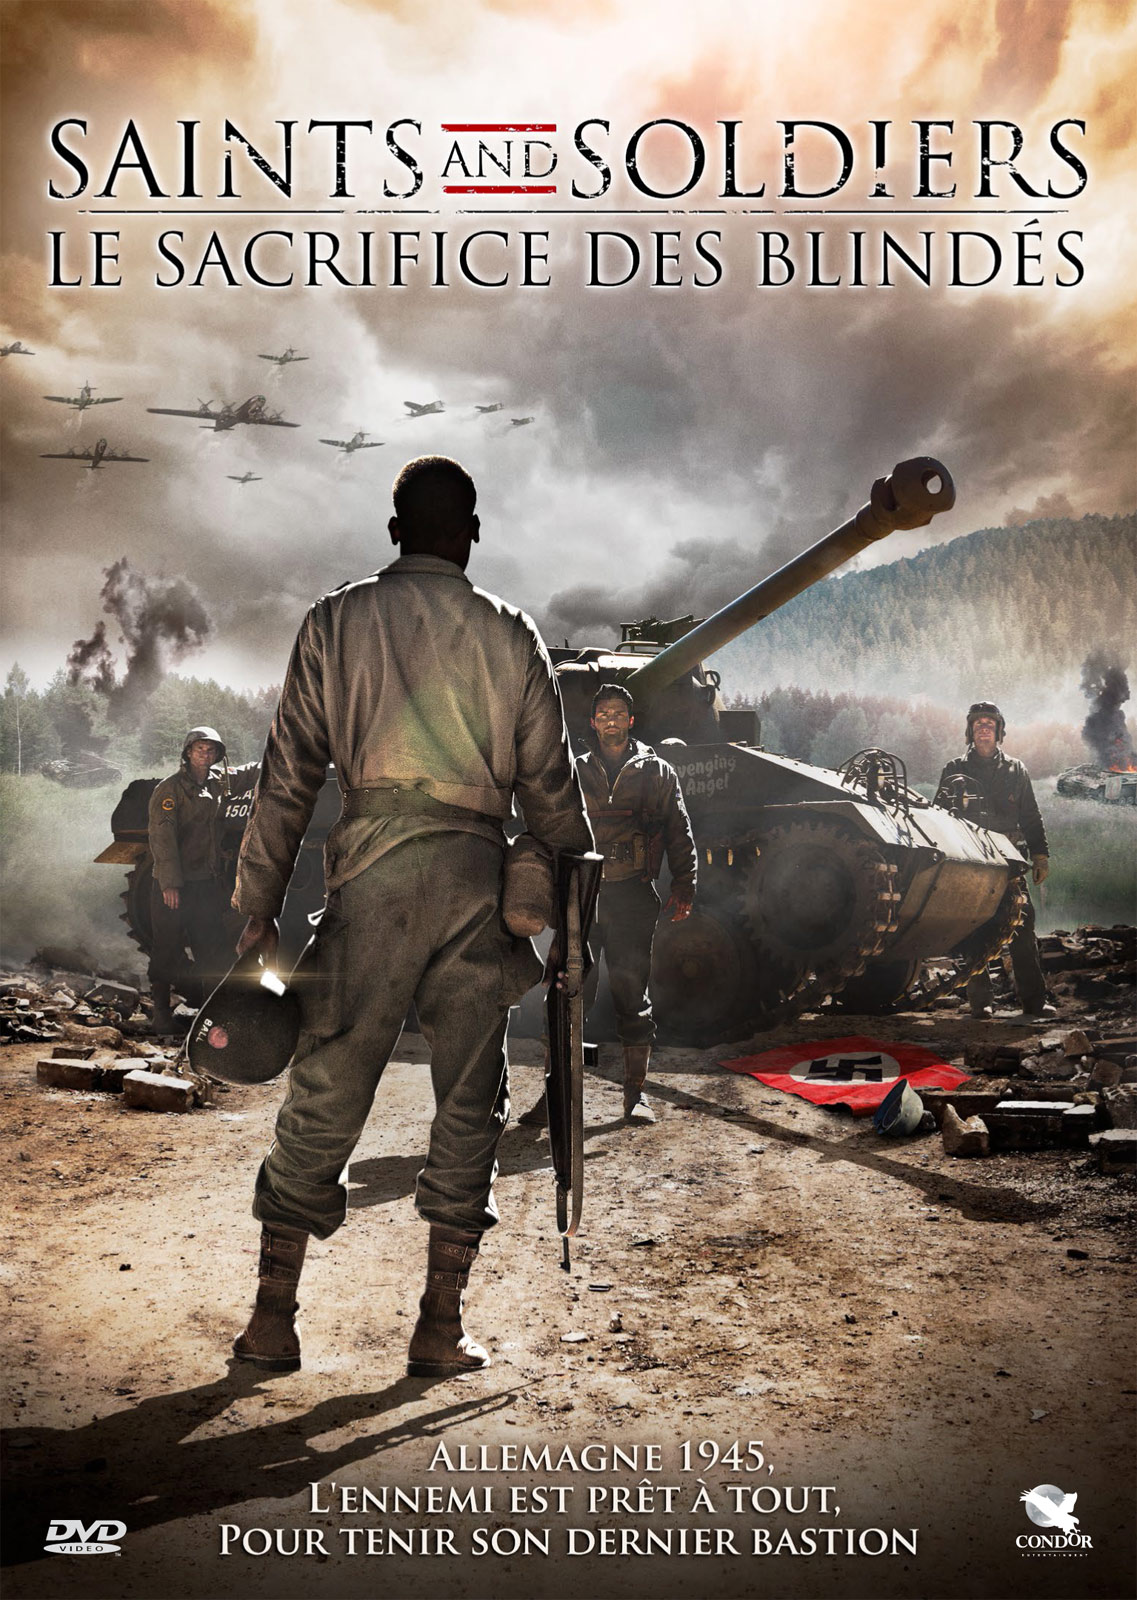 [MULTI]    Saints & Soldiers 3, le sacrifice des blindés  FR XVID  [DVDRIP]